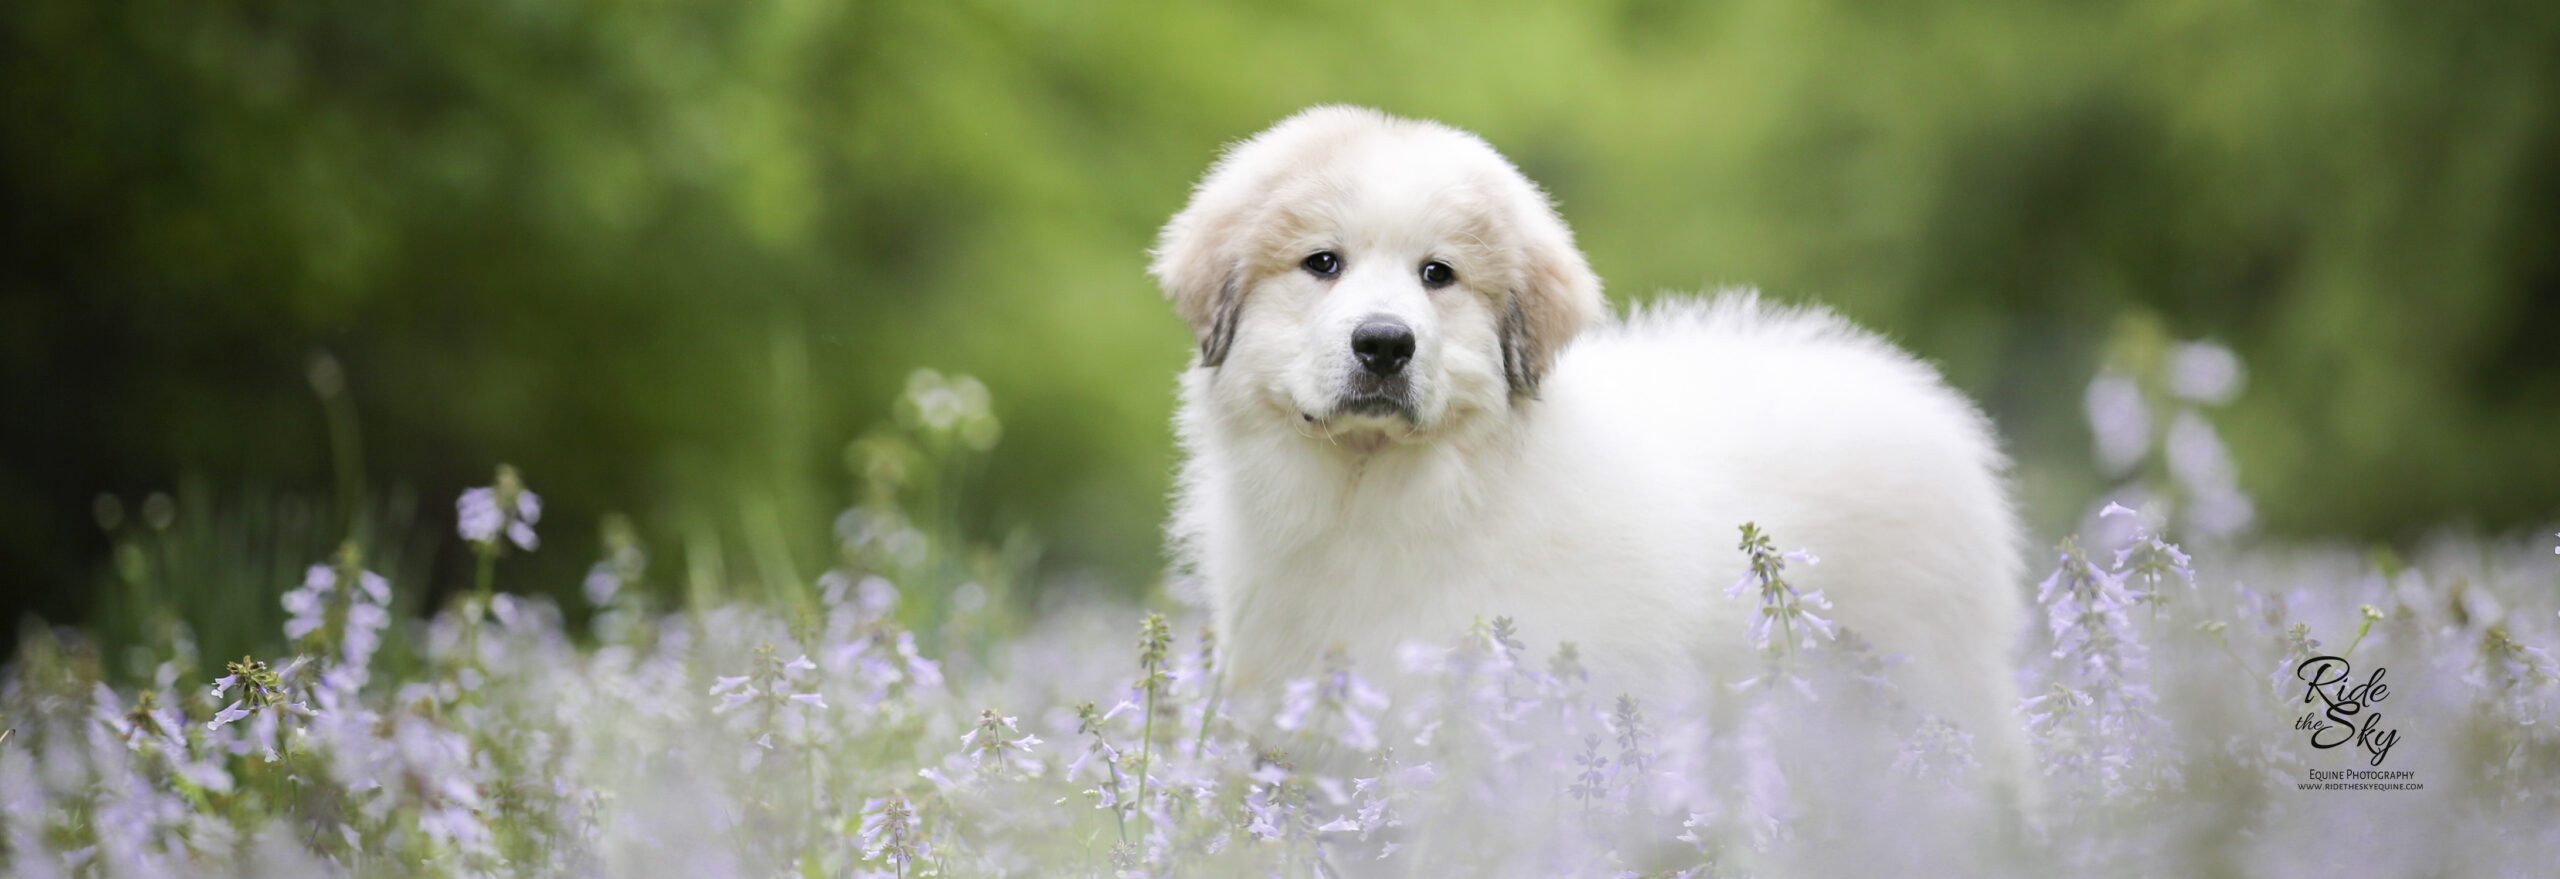 Great Pyrenees Puppy in Purple Flowers